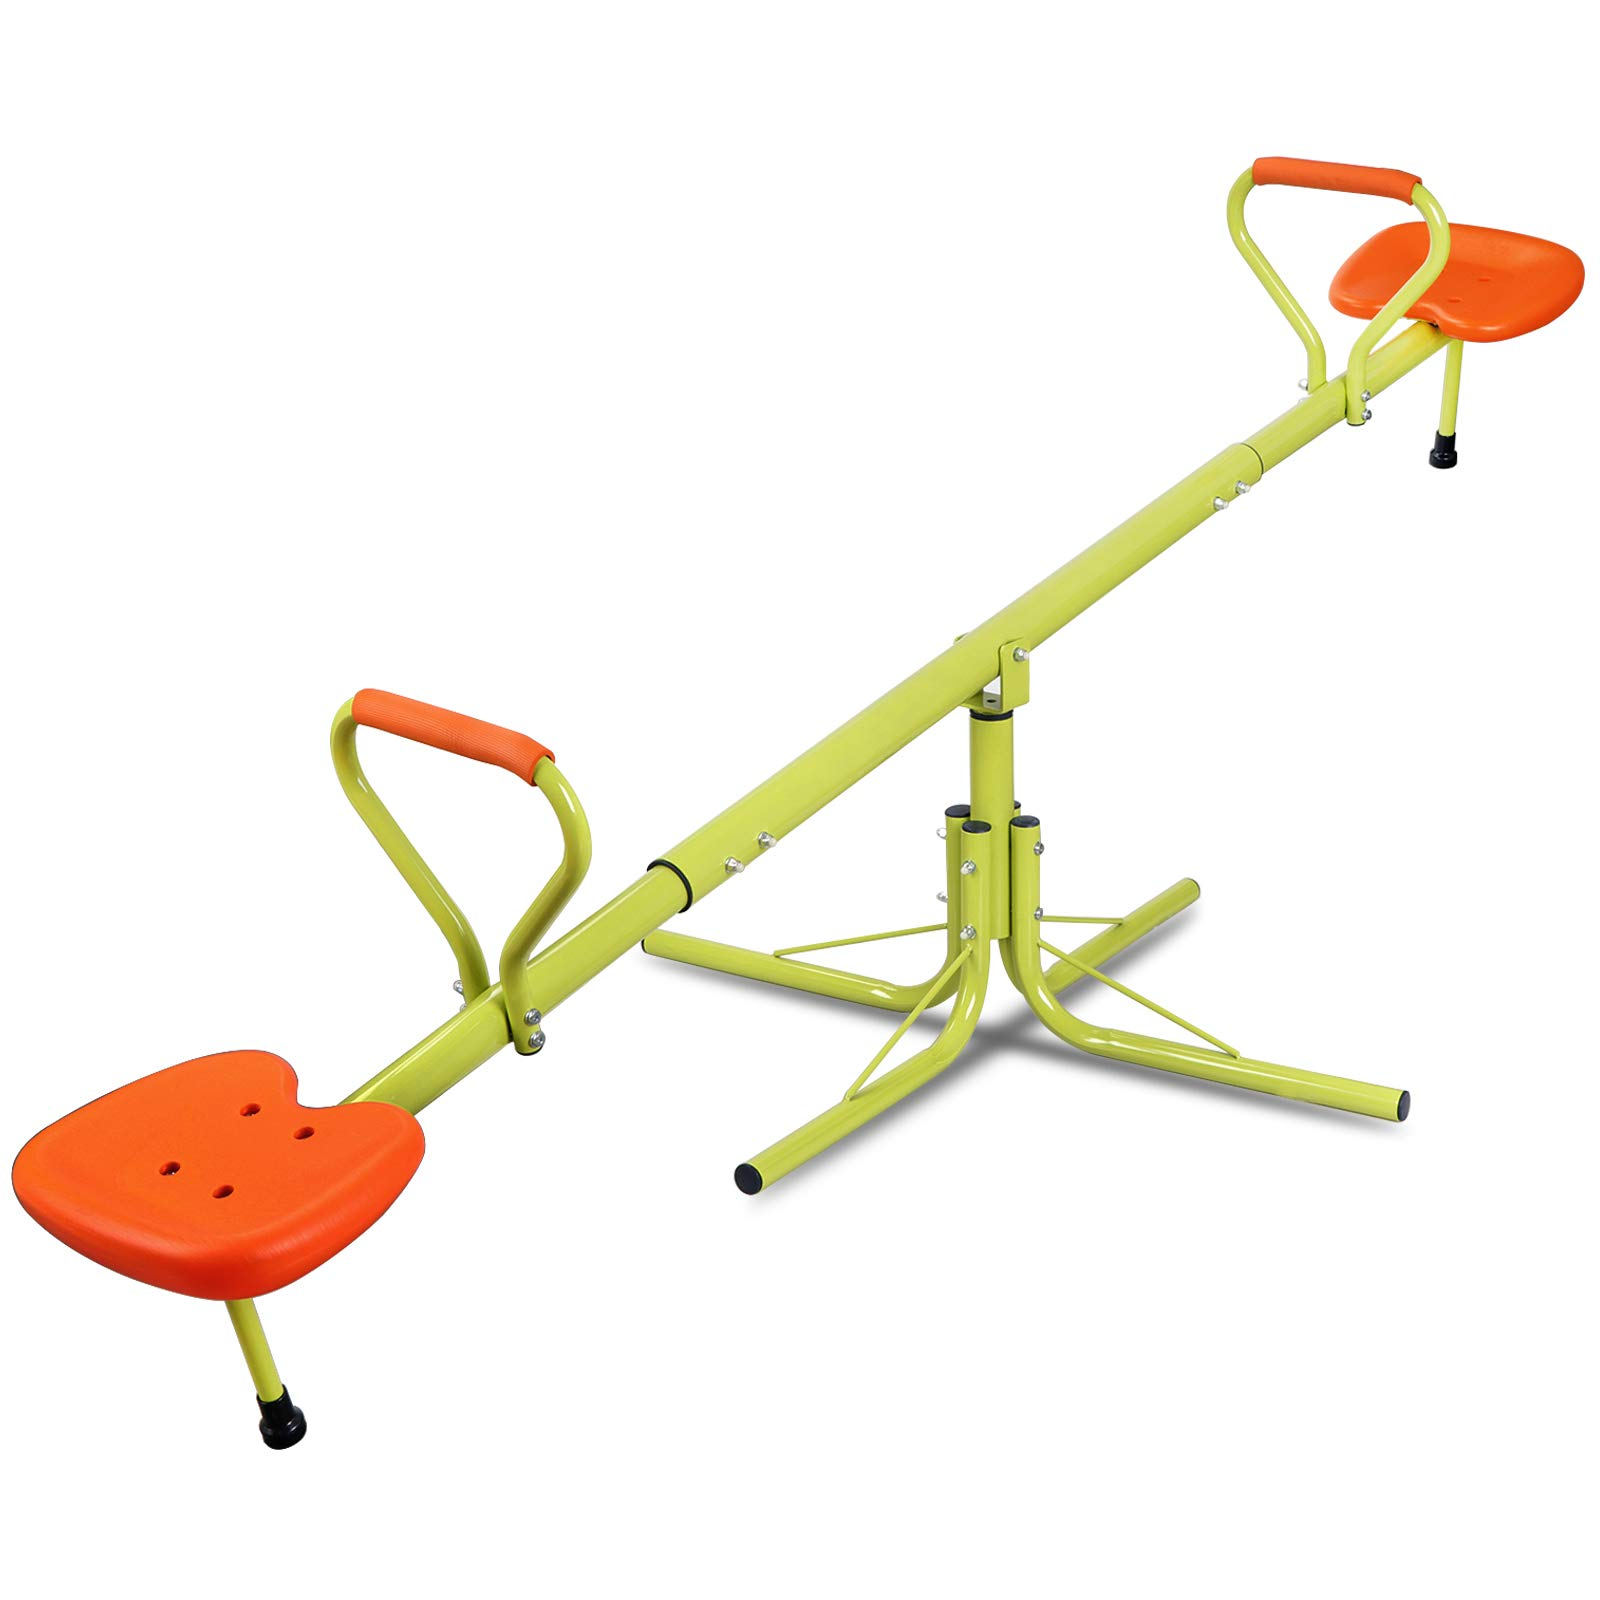 Nova Microdermabrasion Kids Seesaw Swivel Teeter-Totter Home Playground Equipment, 360 Degrees Rotating Safe, Outdoor Fun for Kids, Toddlers, Boys, Children (2 Seats) by Nova Microdermabrasion